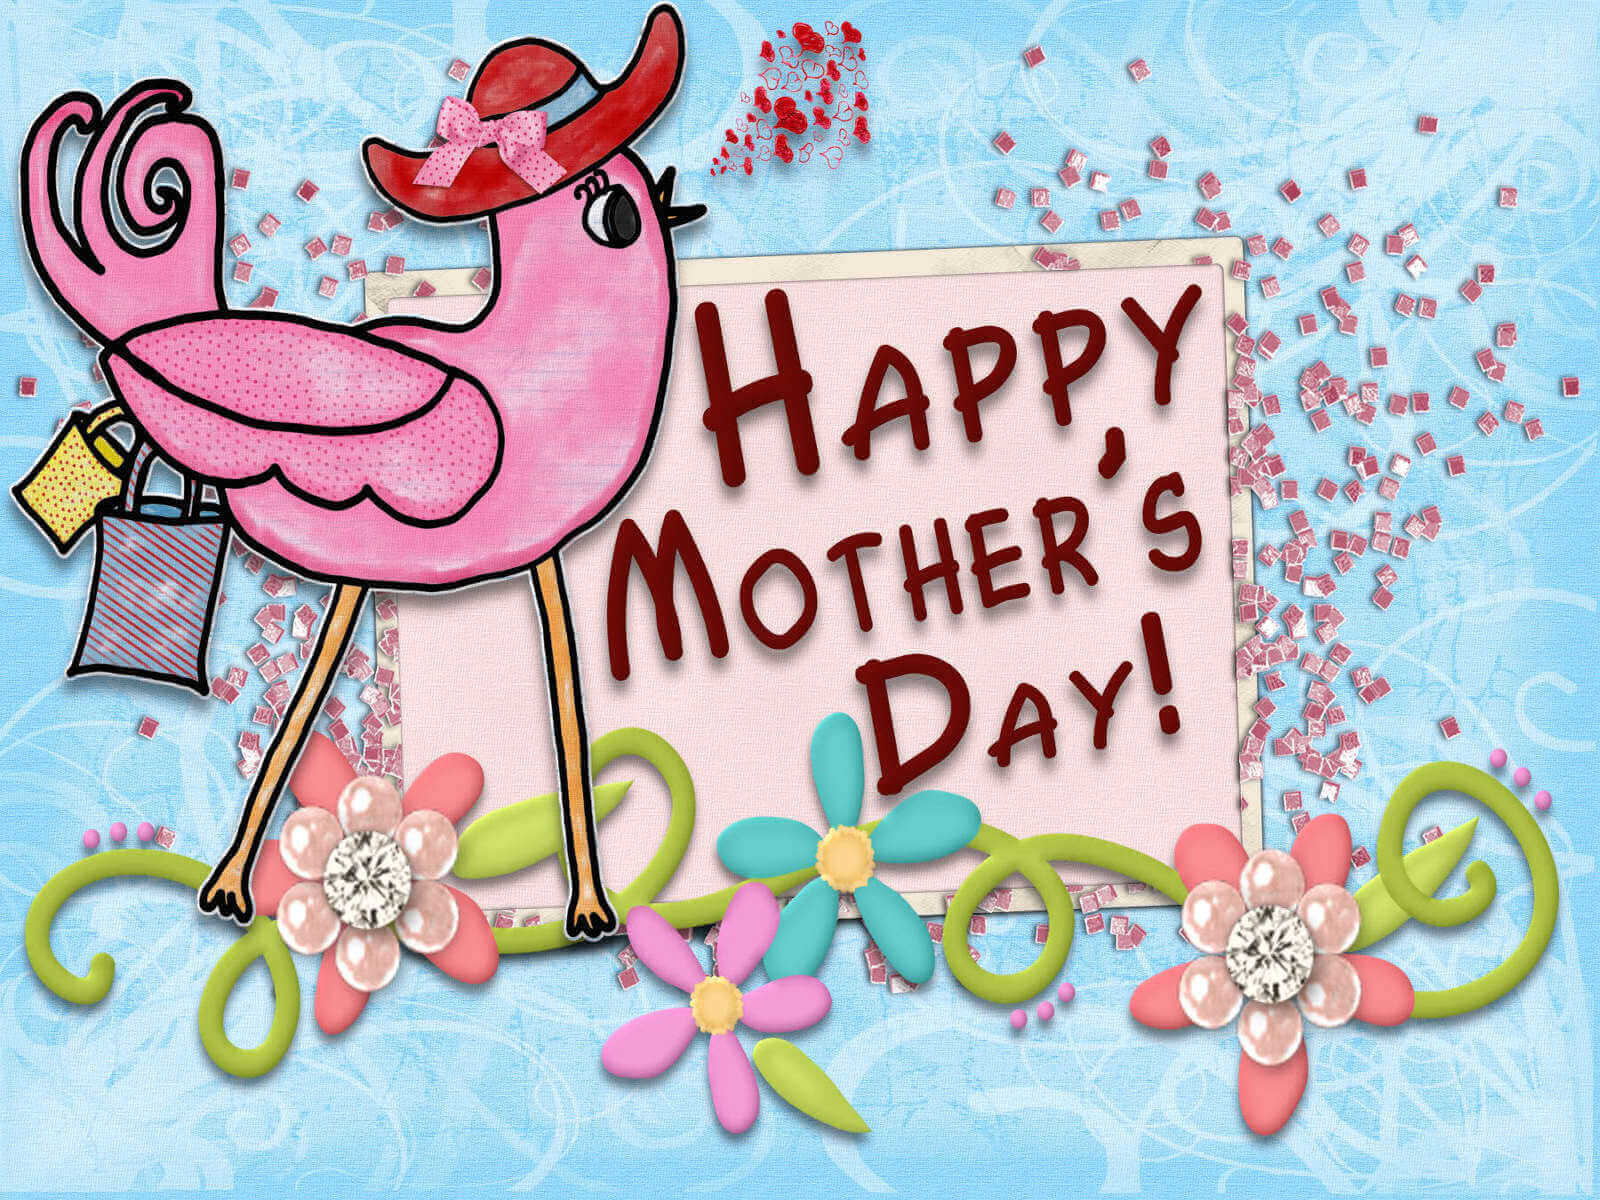 Happy Mothers Day cartoon wallpaper animated